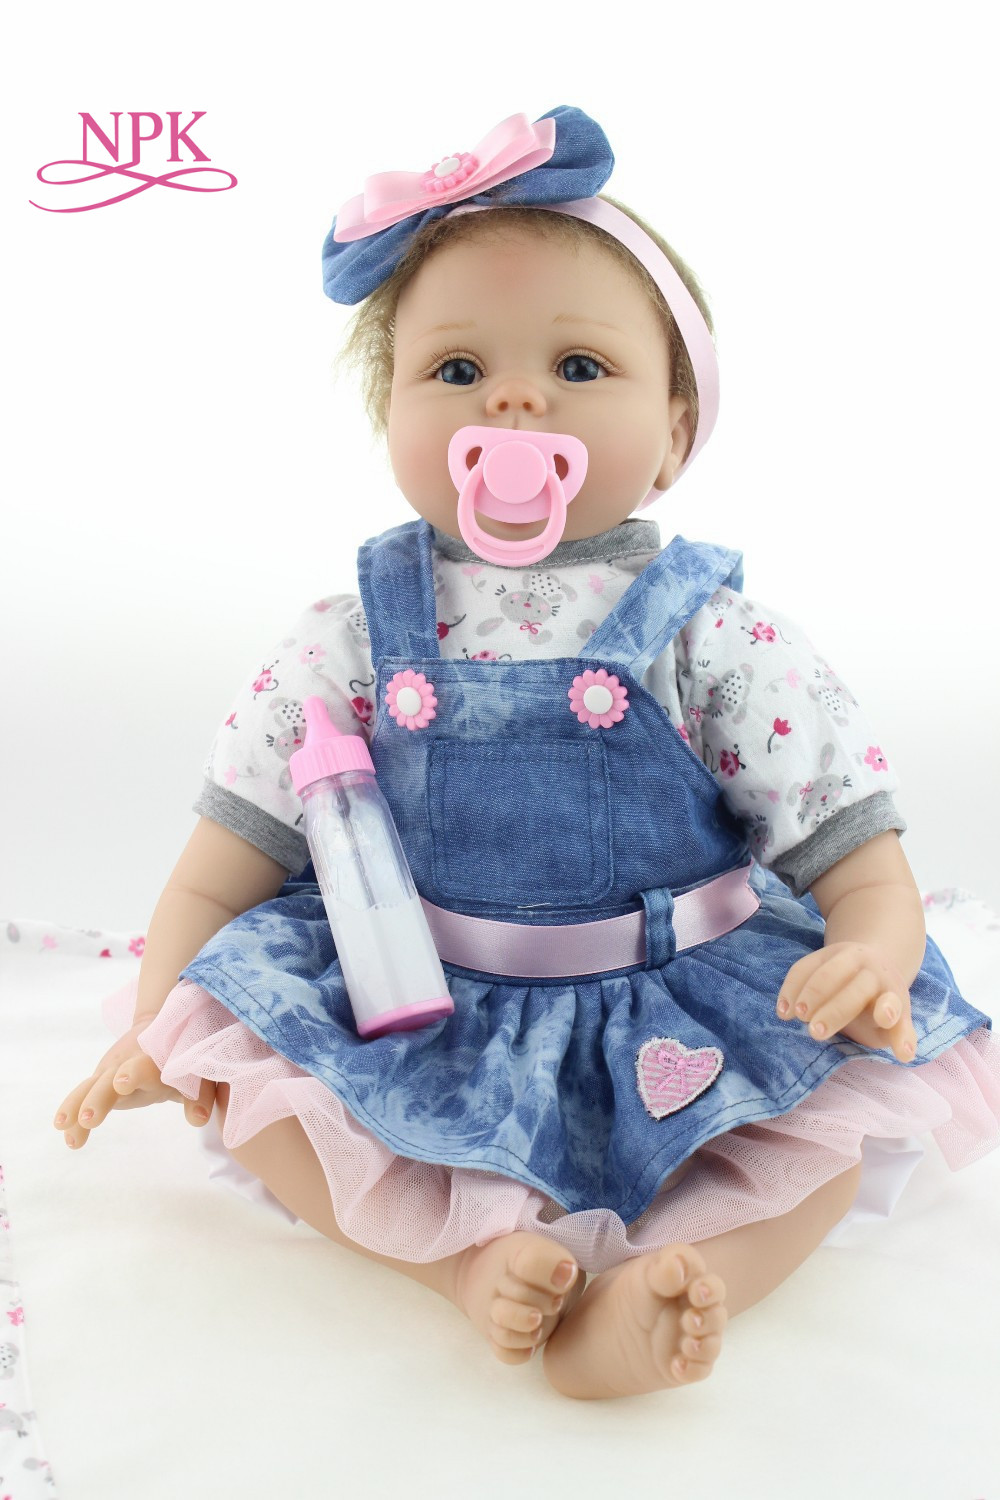 NPK Simulated Doll Reborn birthday Gifts 55cm Reborn girl Baby Silicone Doll Simulation Kid Sleeping Playmate Toys gift for girl цена